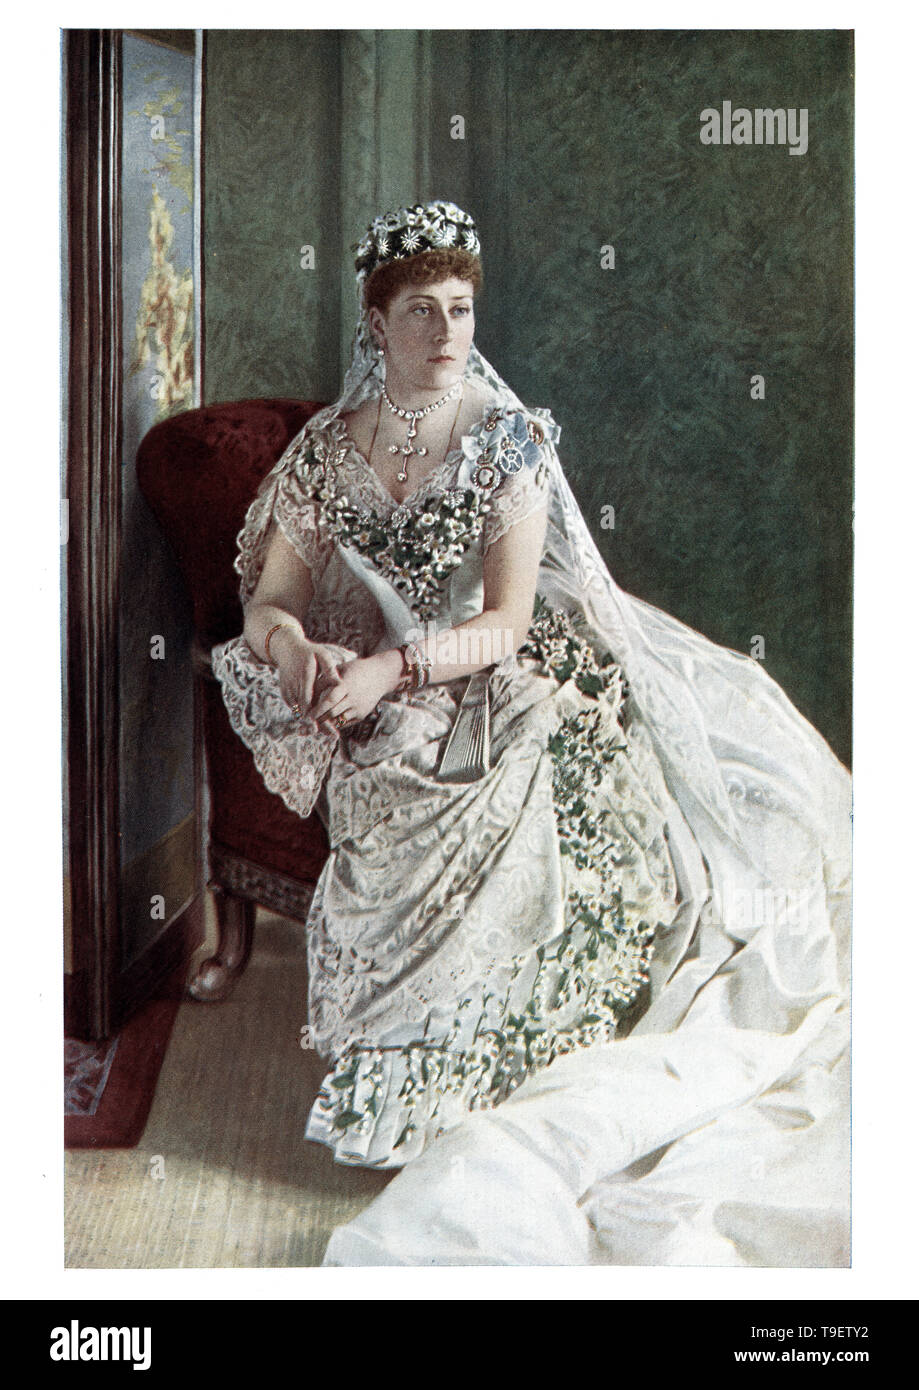 Princess Beatrice of the United Kingdom (Princess Henry of Battenberg), the fifth daughter and youngest child of Queen Victoria and Prince Albert. - Stock Image